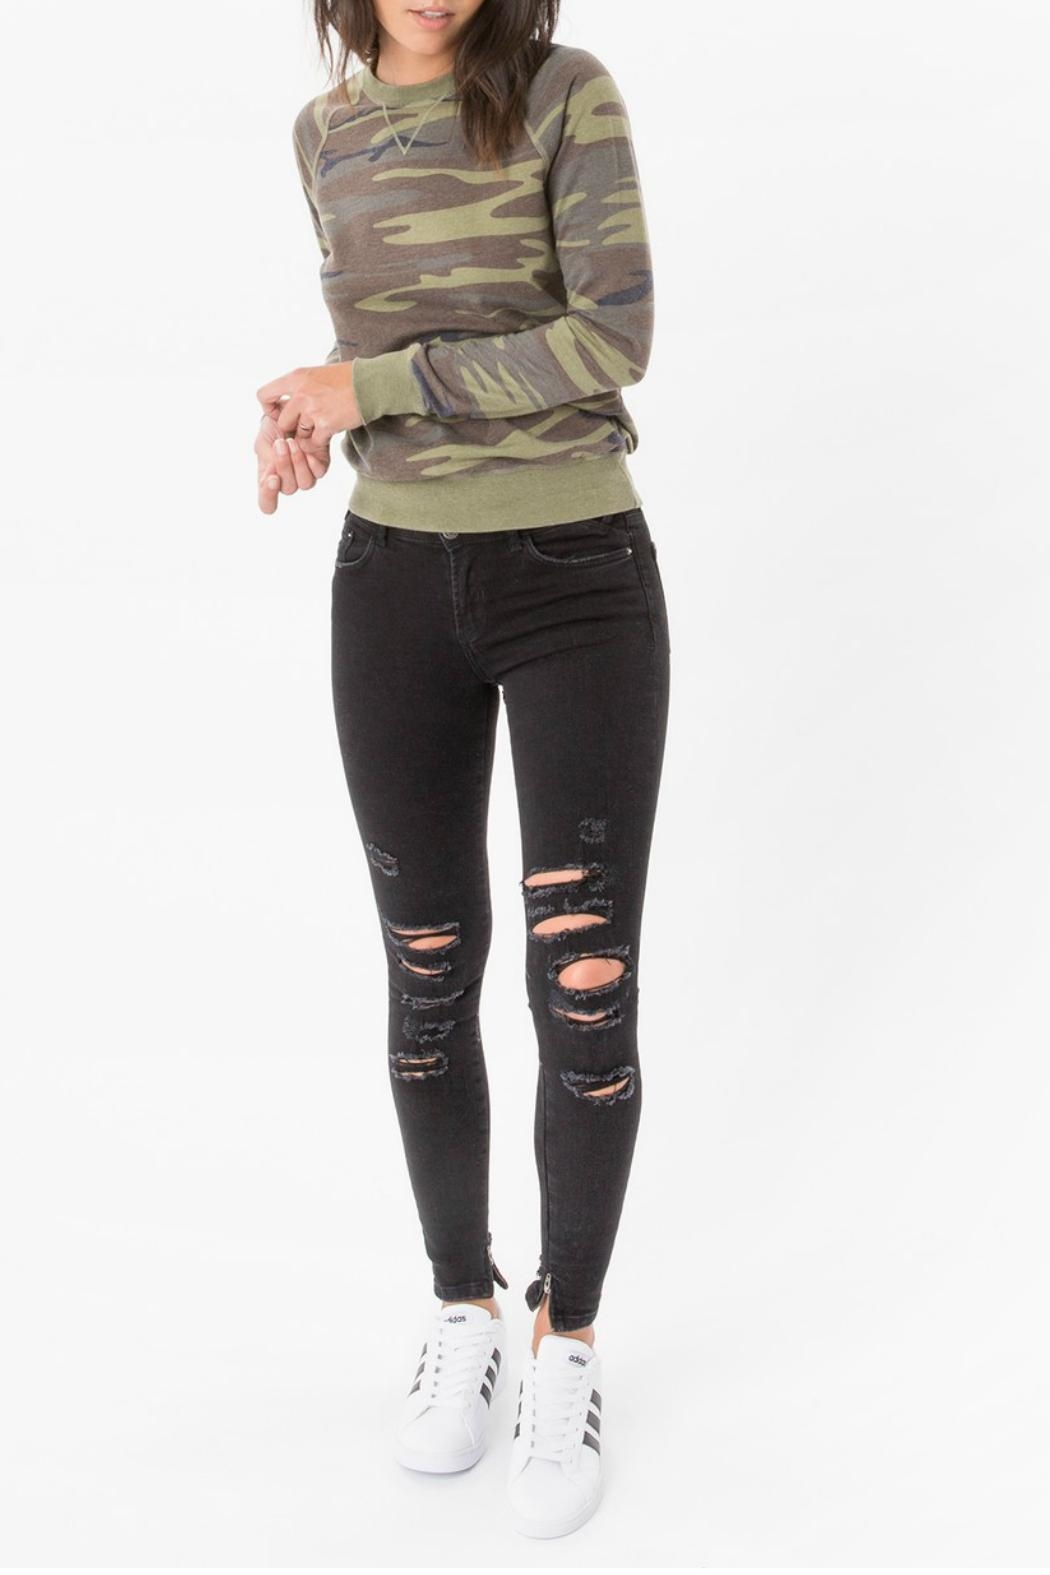 z supply Camo Crew Pullover Top - Back Cropped Image